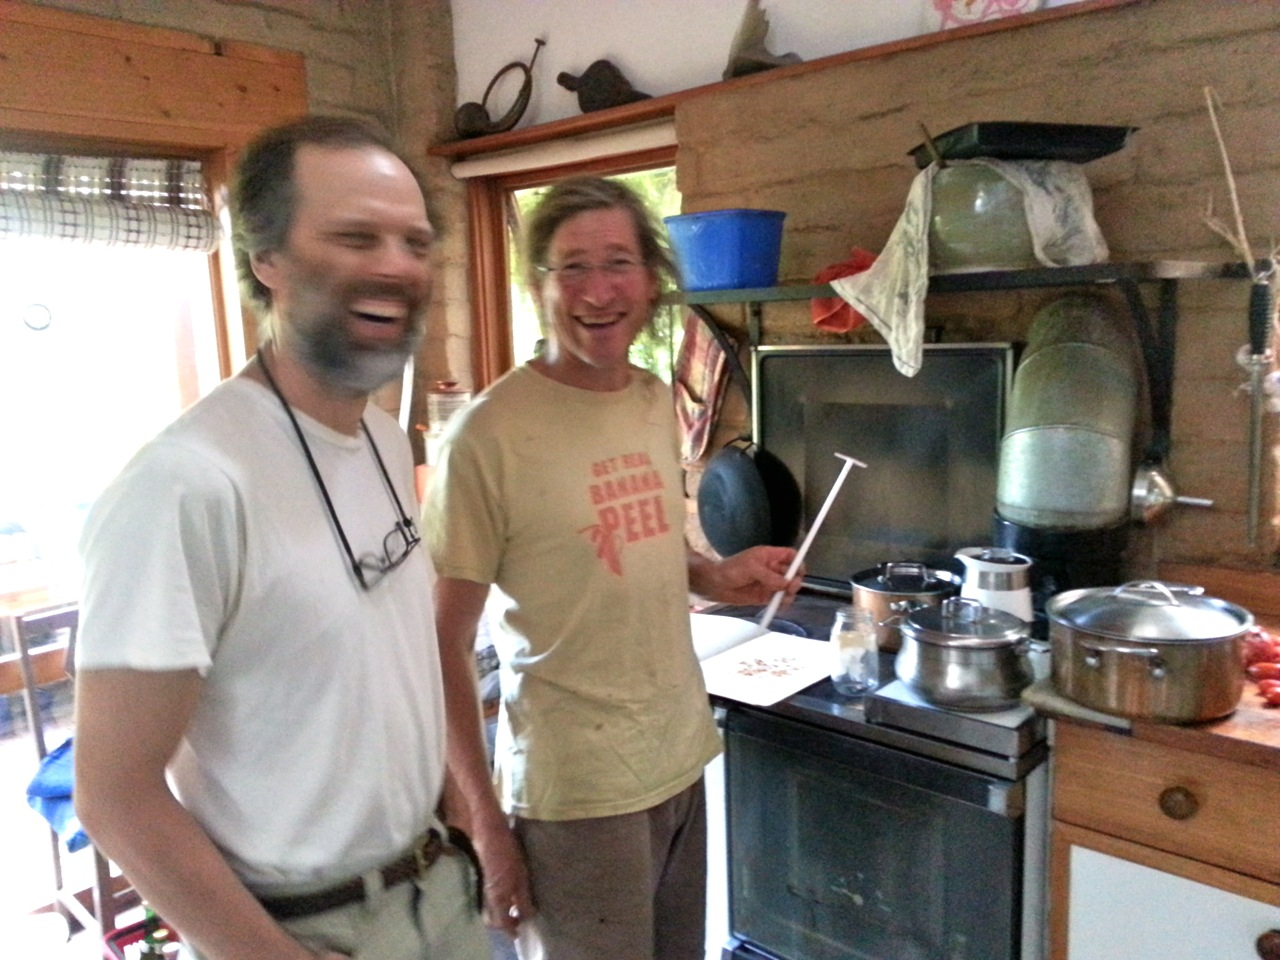 Dave Jacke and David Holmgren in the kitchen at Melliodora